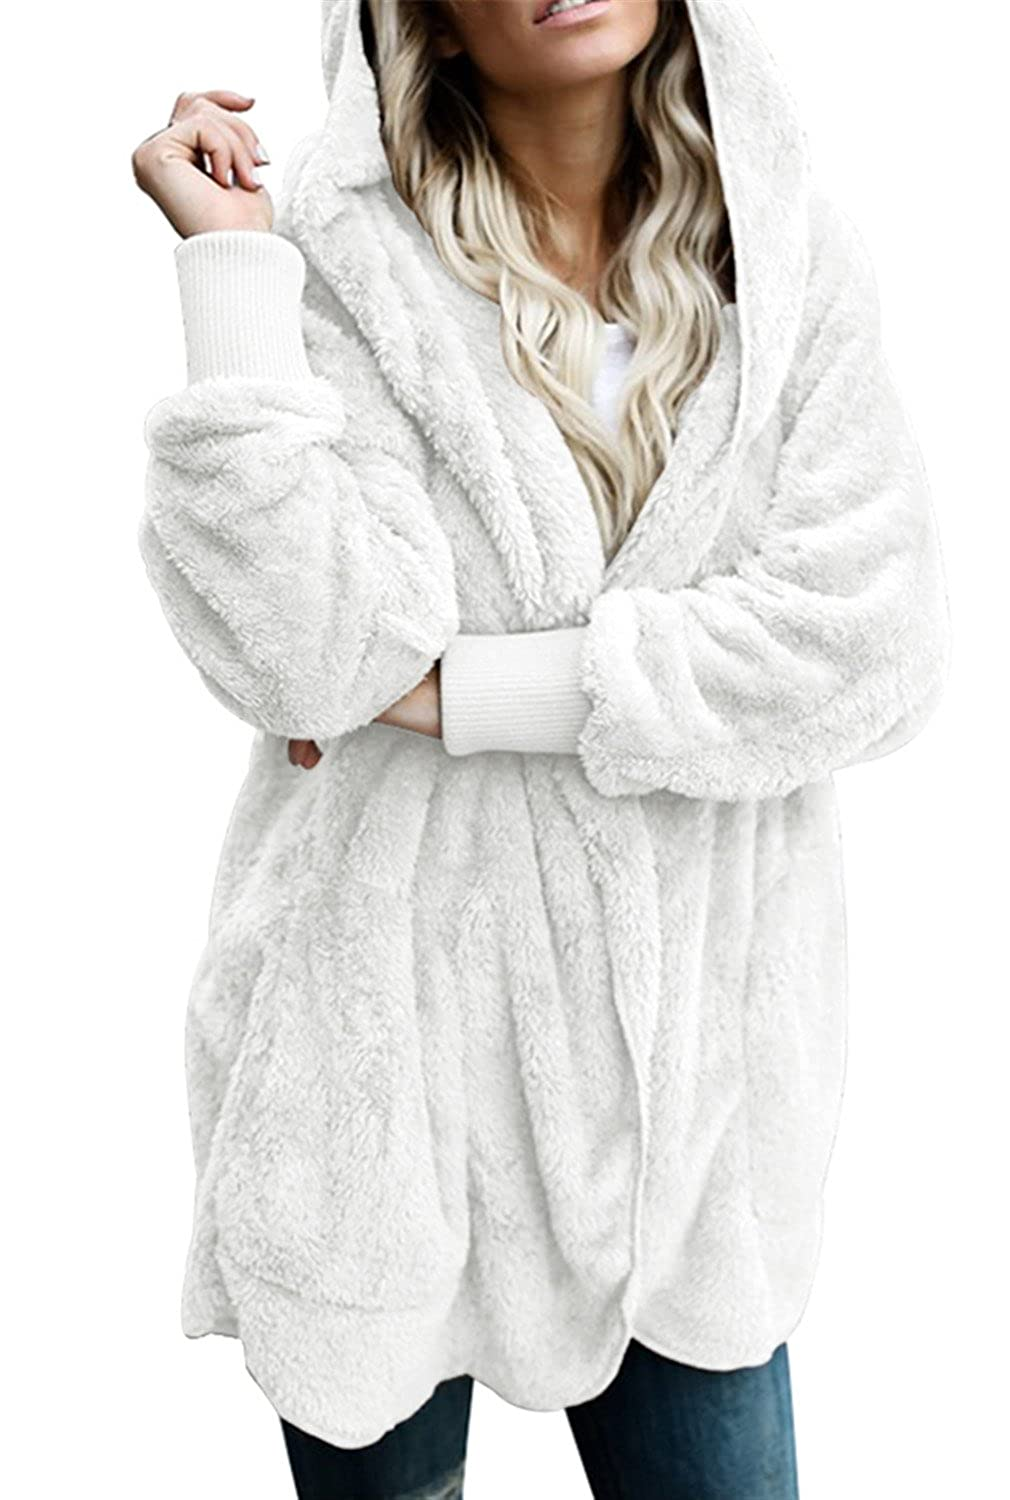 White Dokotoo Womens Fuzzy Open Front Hooded Cardigan Jacket Coat Outwear with Pocket